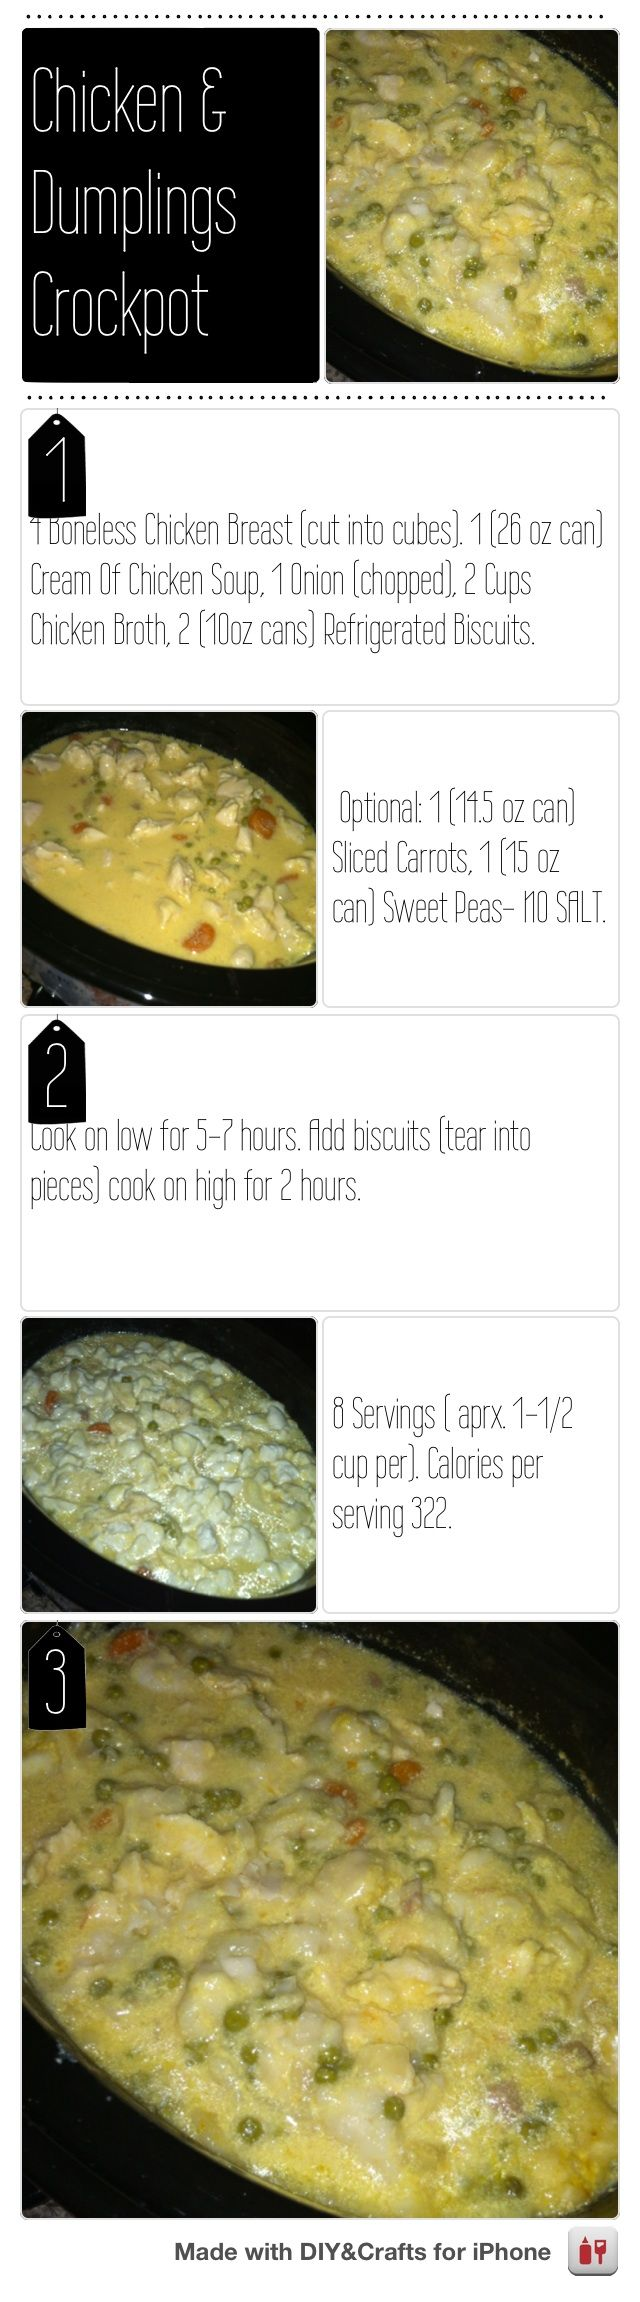 Chicken and Dumplings Crockpot. Low Calories per serving #DIYCraftsEditor #DIY #iOS @DIY & Crafts Editor iPhone App